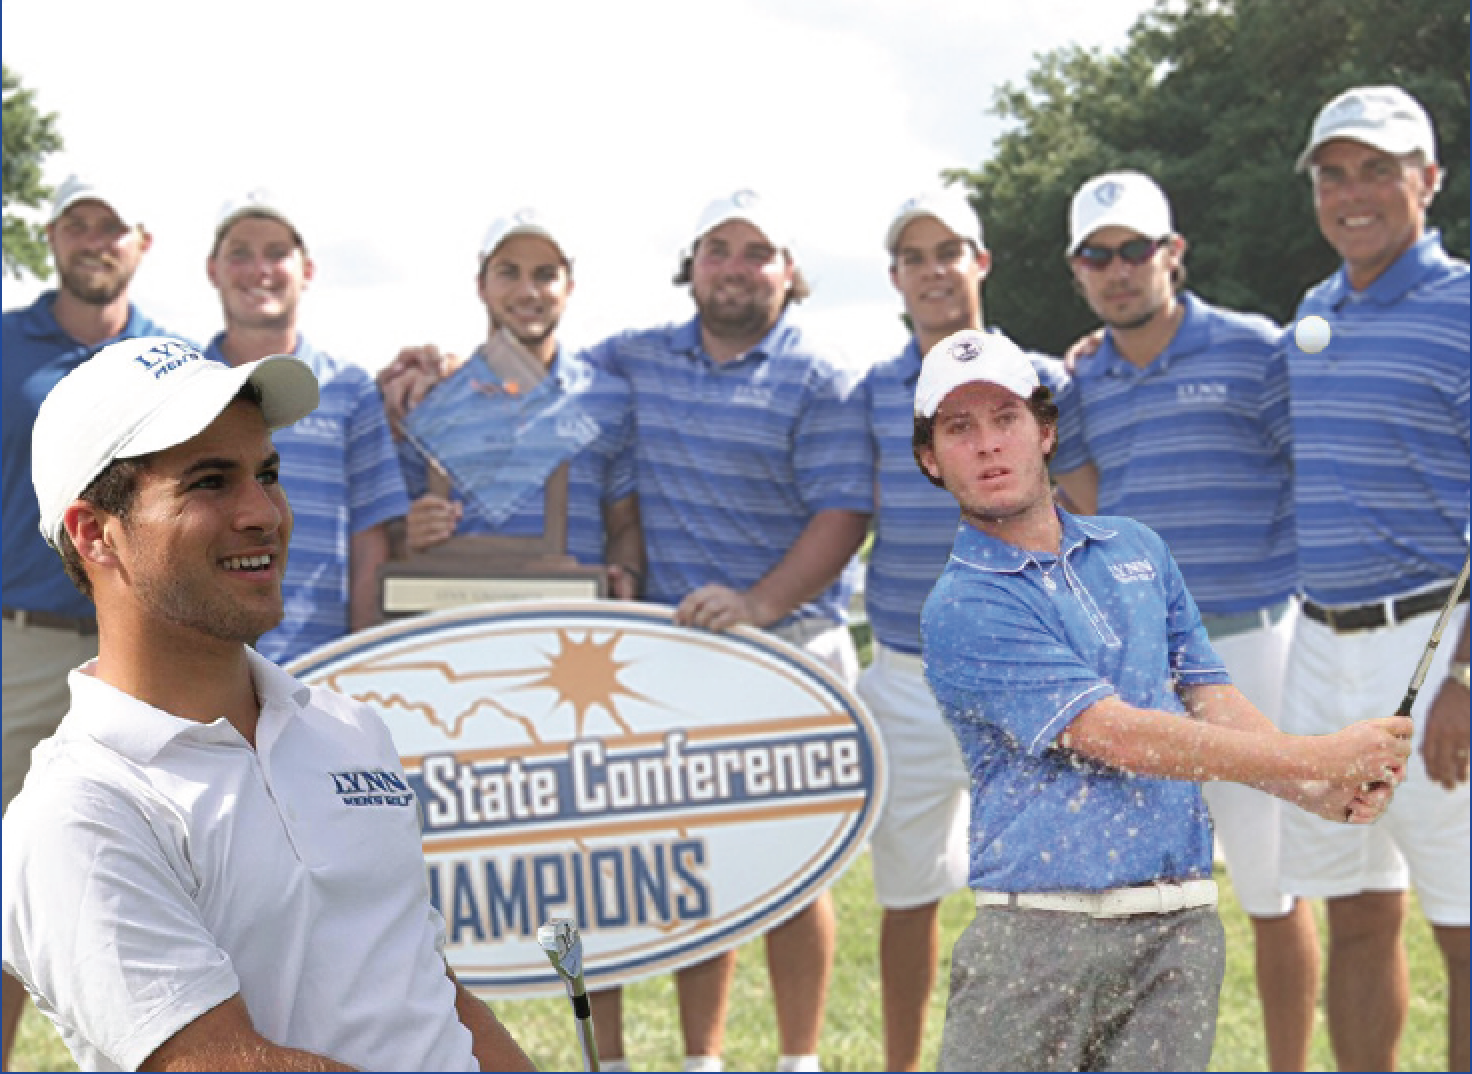 Above: The Men's Golf team wins yet another first place title at this year's Sunshine State Conference Championship. LU Photos.